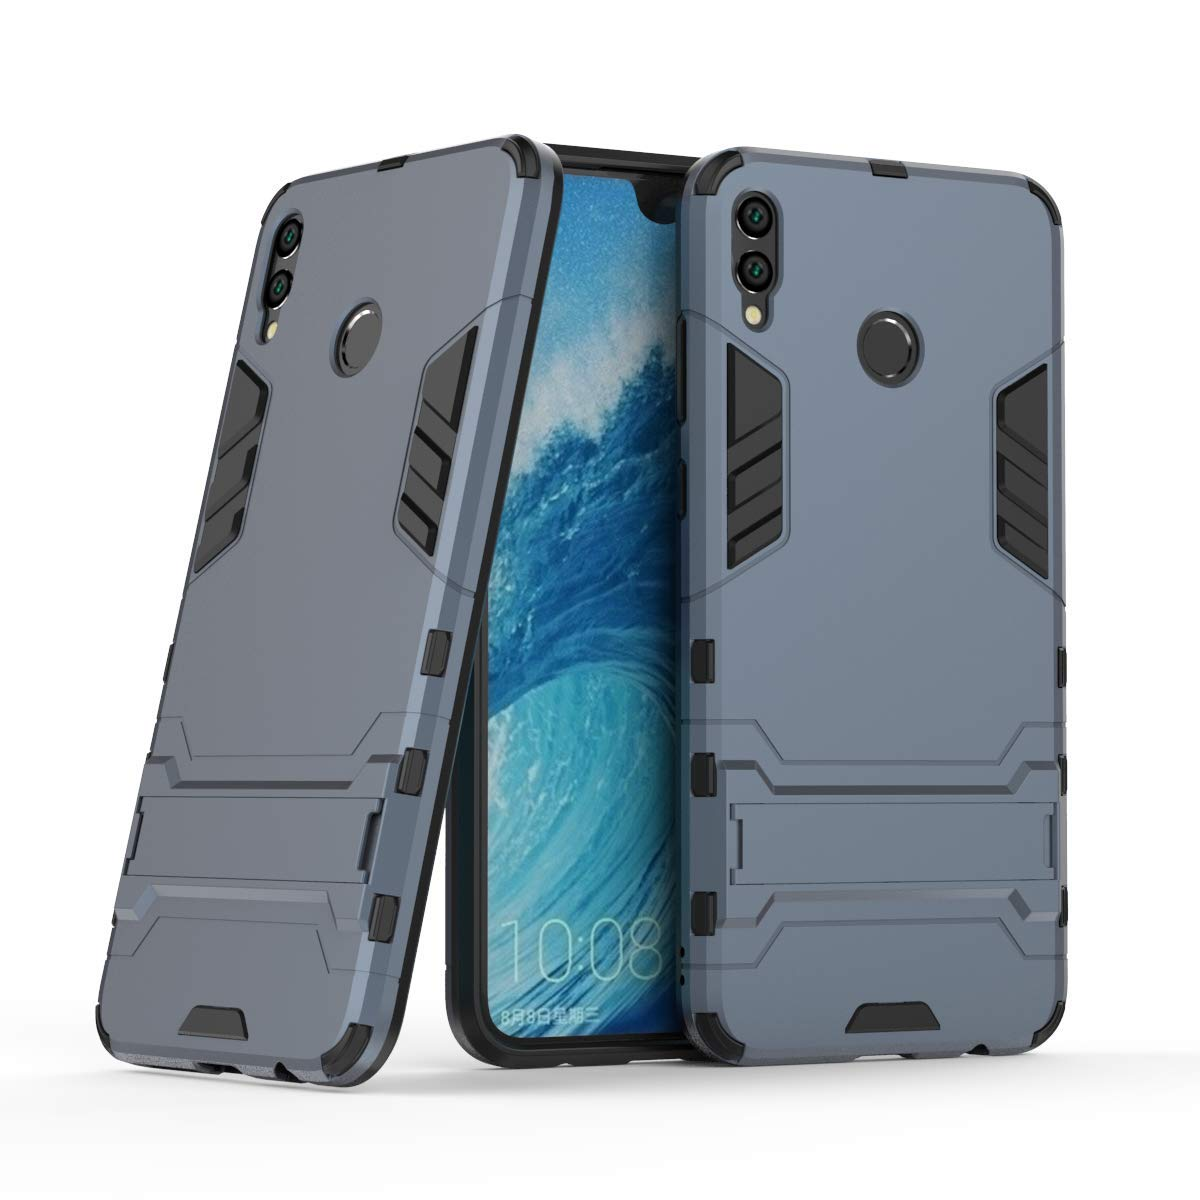 Amazon.com: Honor 8X Max Case, CaseExpert Shockproof Rugged ...